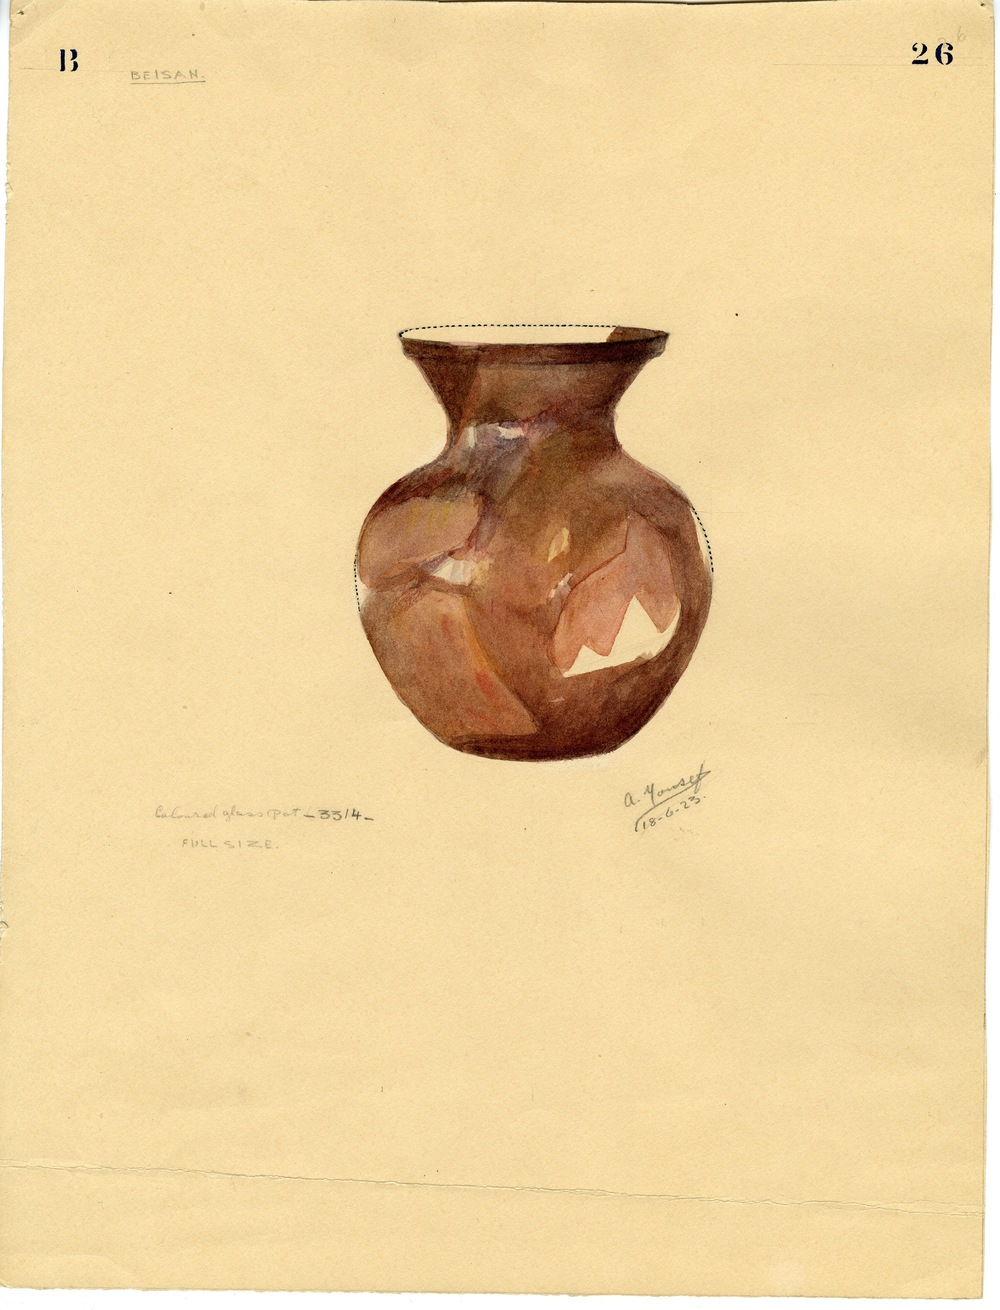 Watercolor of glass pot # 3314, from the Fisher excavations.